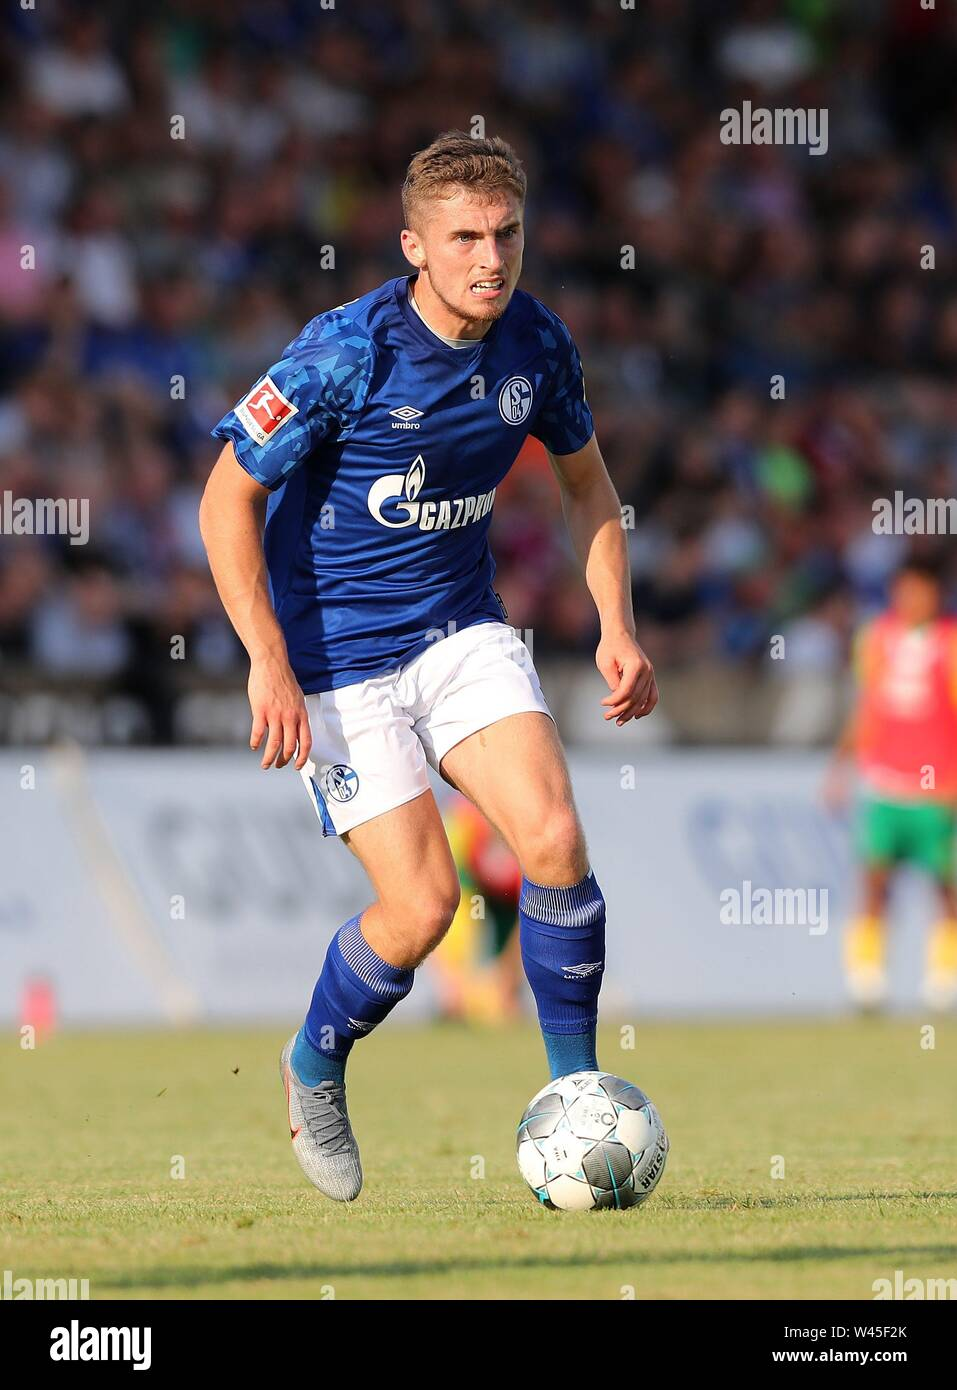 Lotte, Deutschland. 19th July, 2019. firo: 19.07.2019, football, 1.Bundesliga, season 2019/2020, friendly match, FC Schalke 04 - Norwich City Jonjoe KENNY, Schalke, single action | usage worldwide Credit: dpa/Alamy Live News - Stock Image